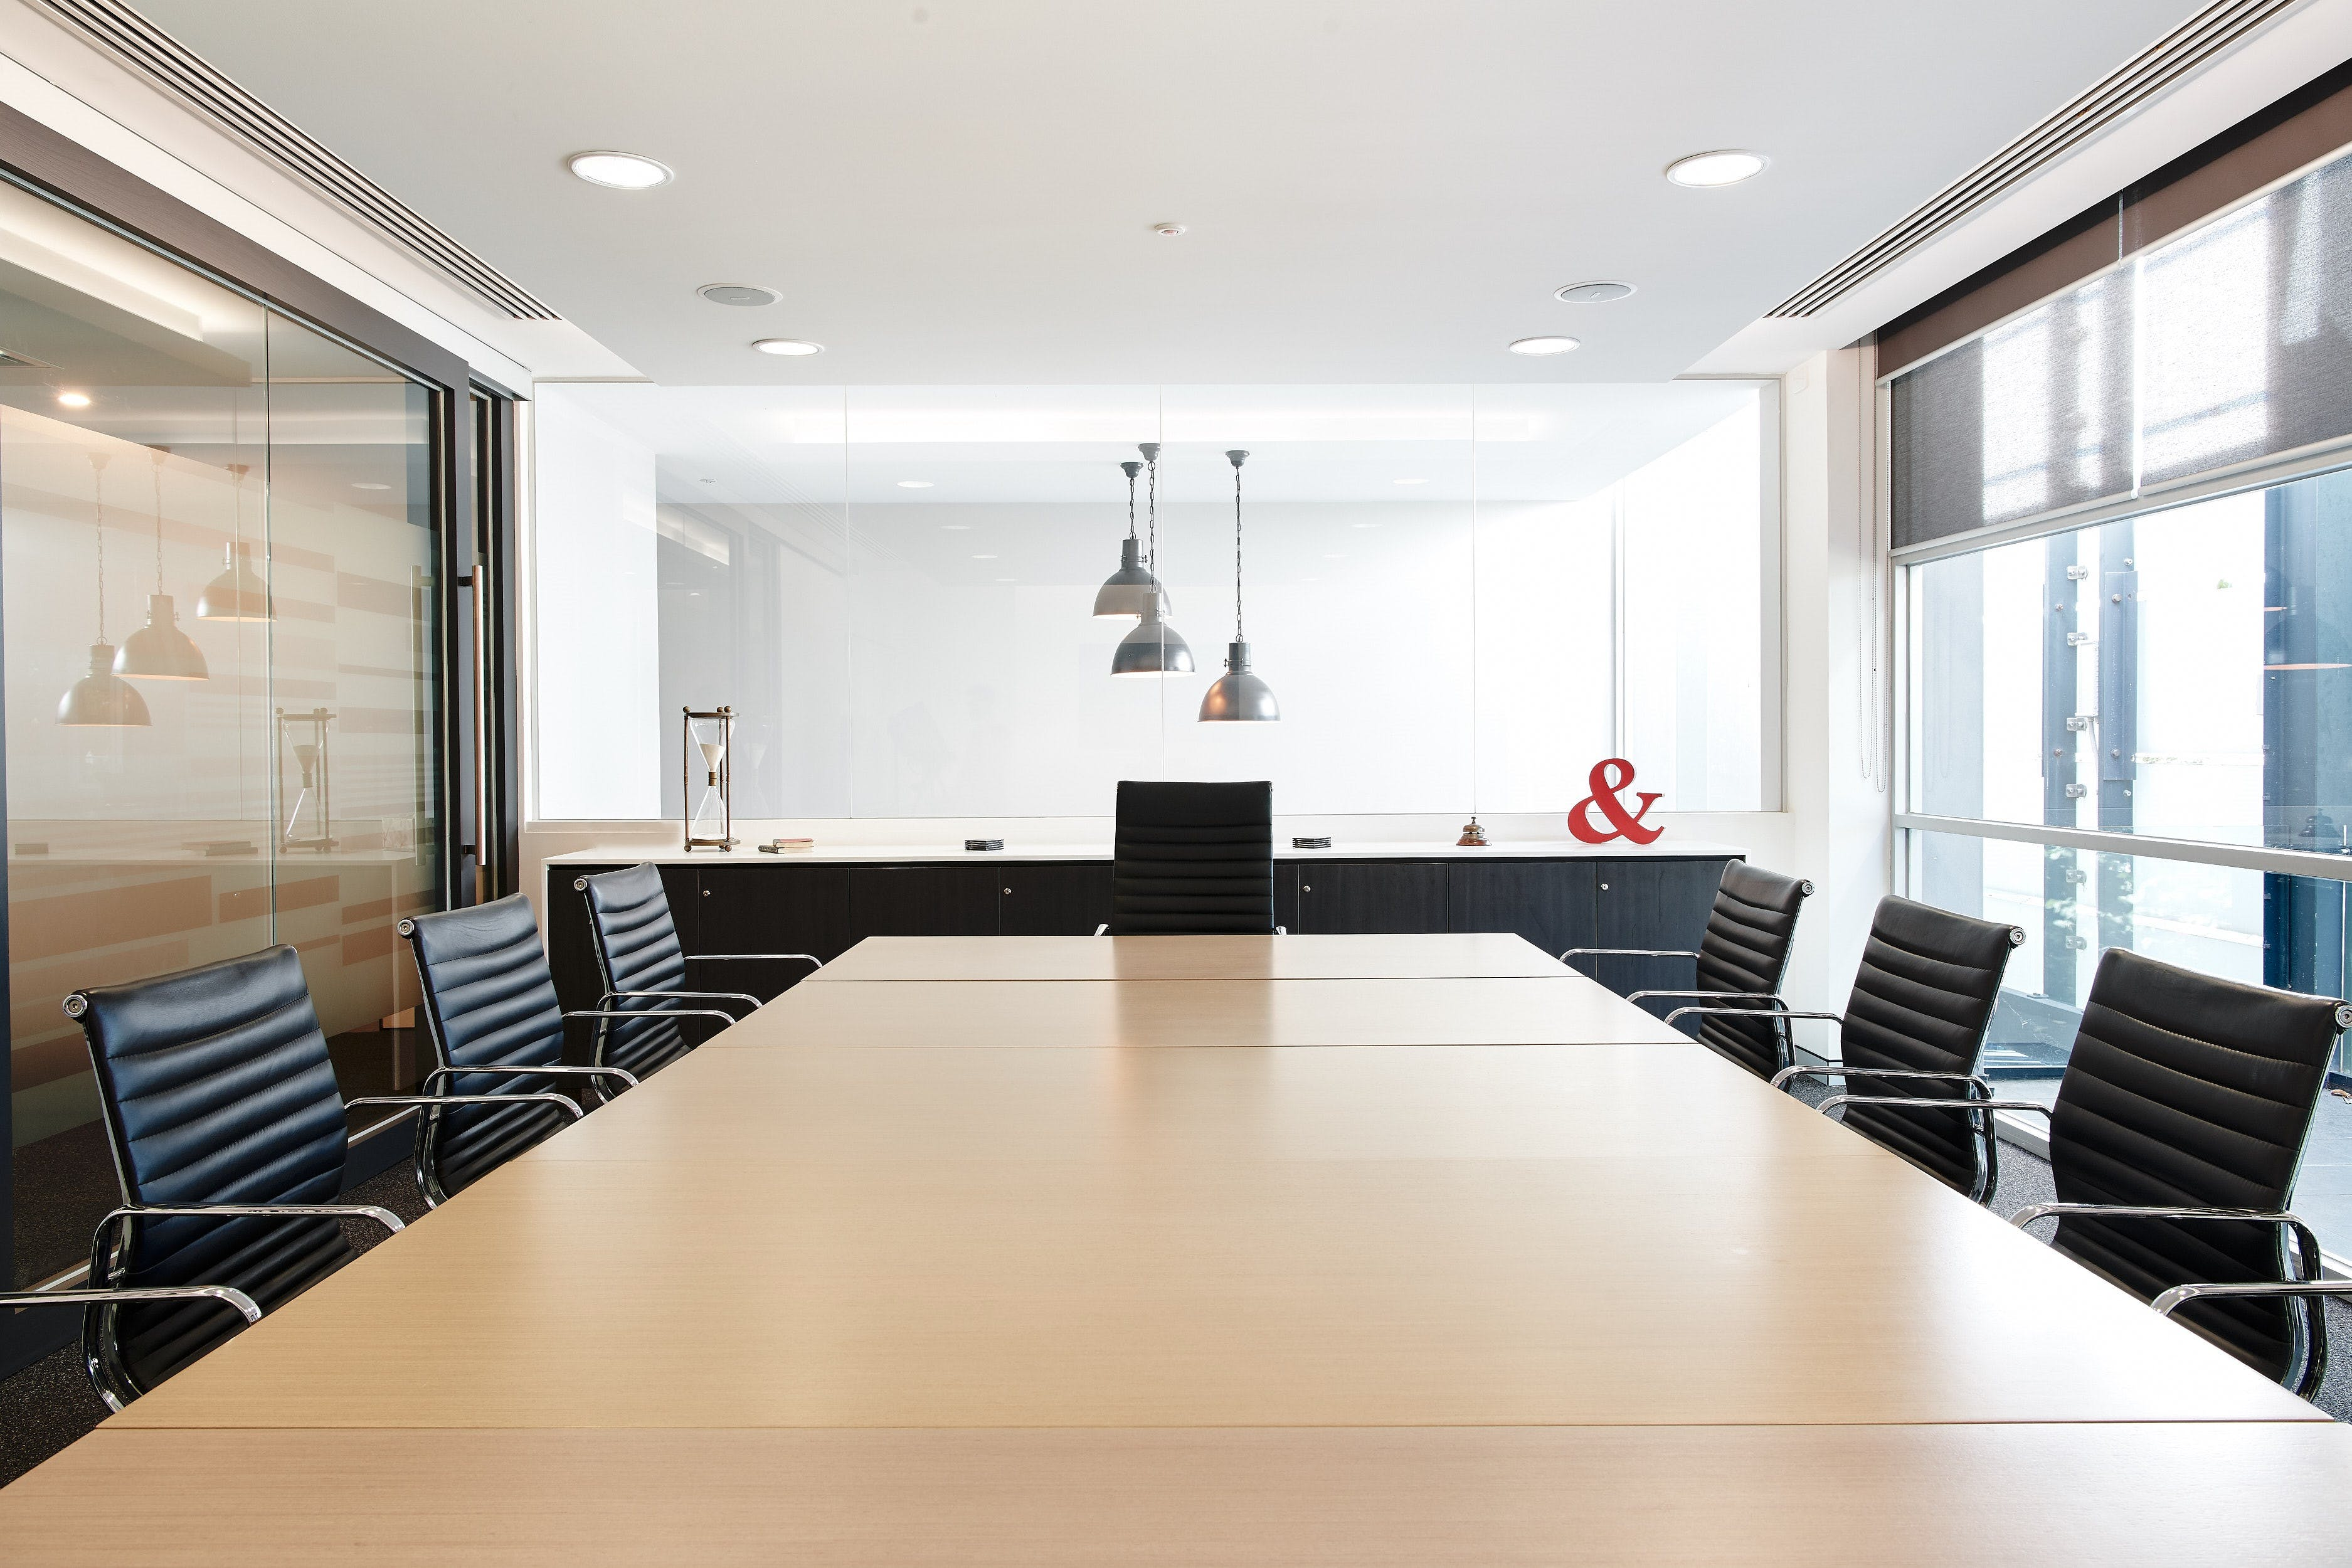 Coventry Room (Board Room) - 10 Person Room, meeting room at Maverick Rose Group, image 1